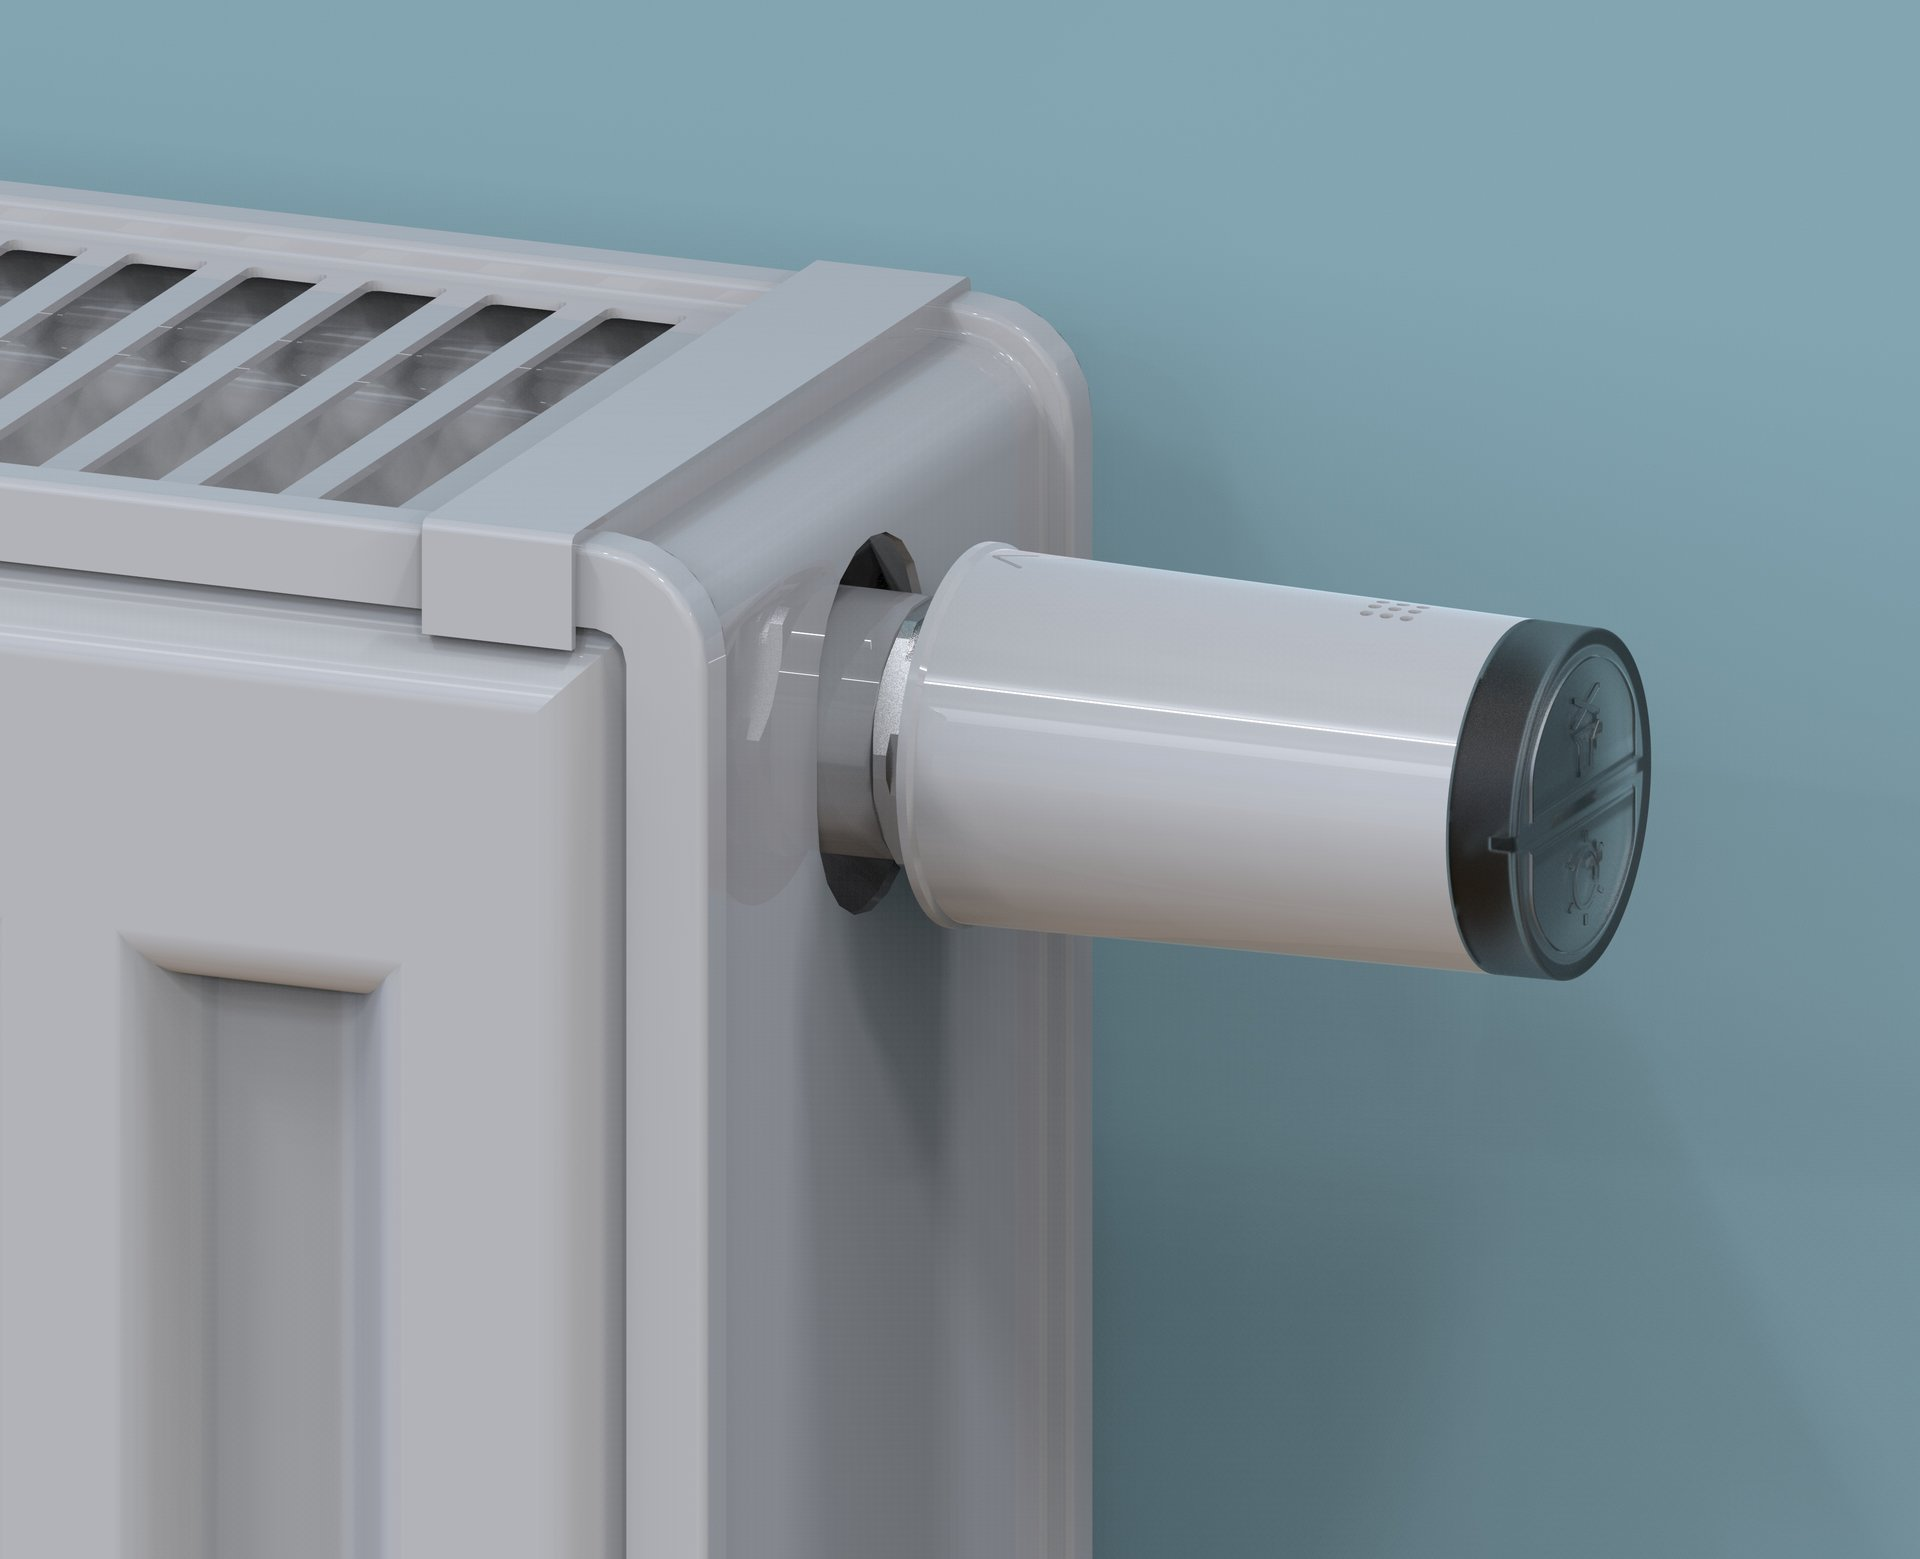 New low-pressure warning device offers upsell opportunity for installers